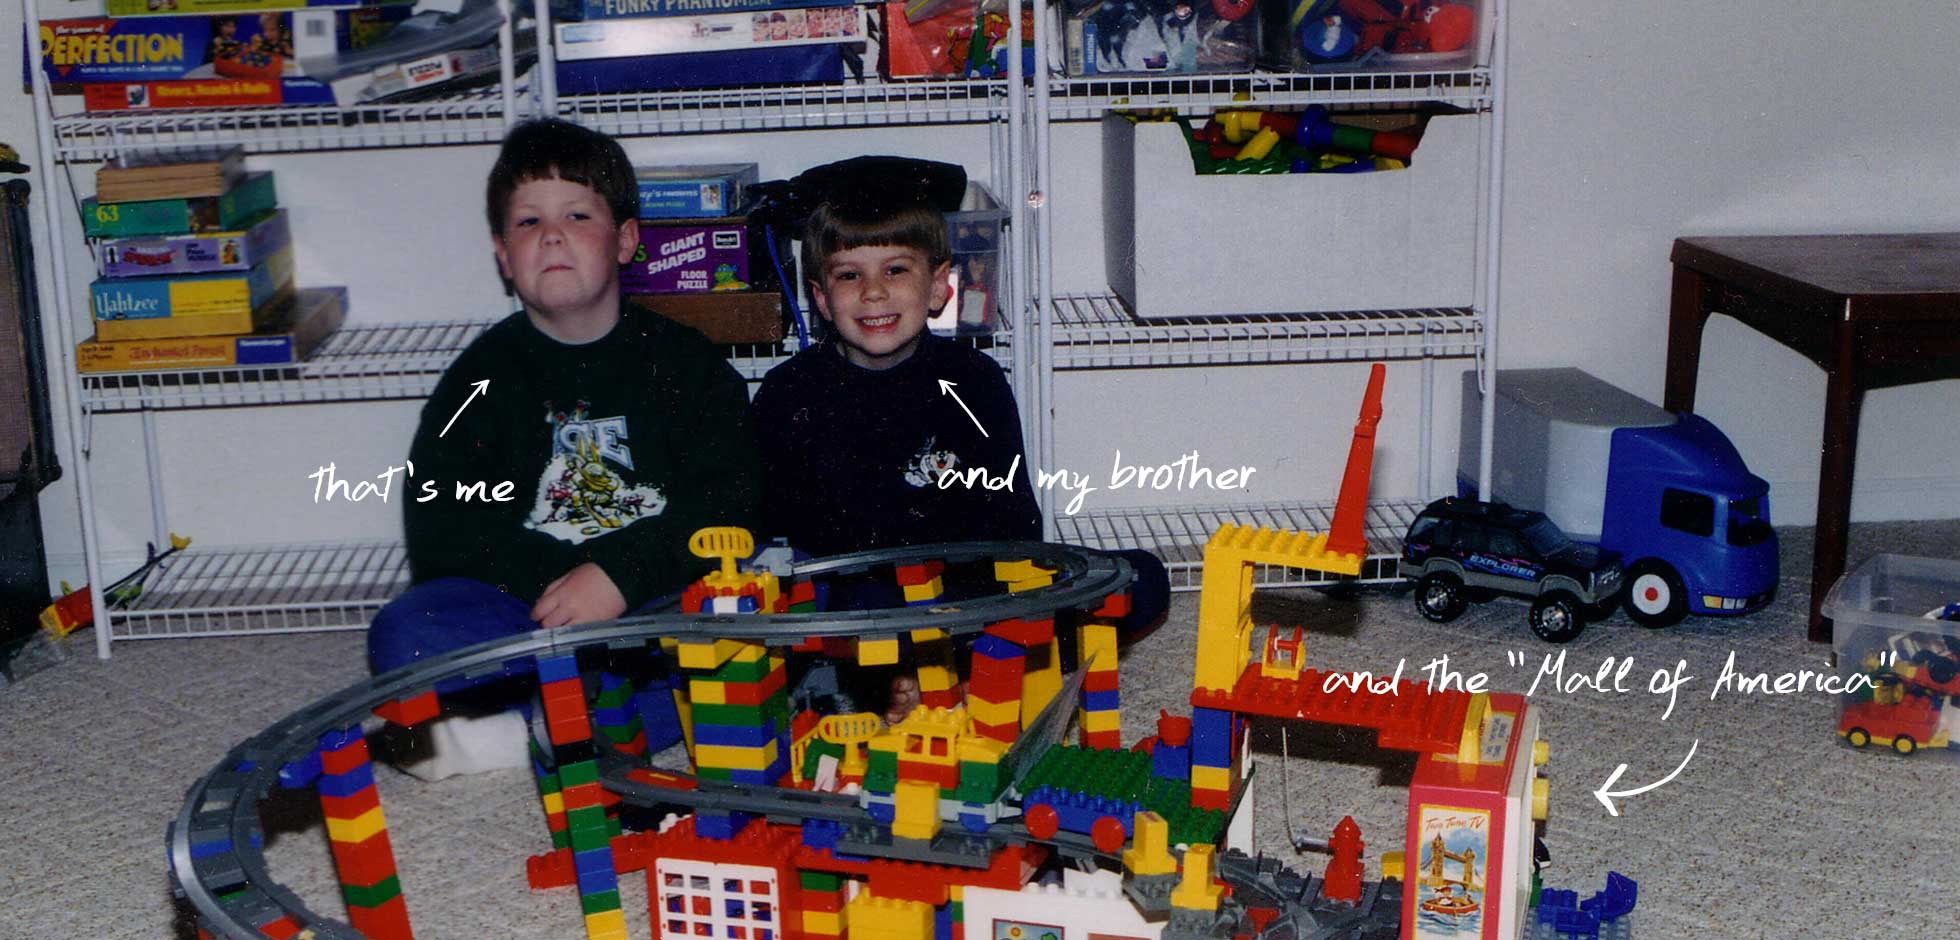 Cory and his legos